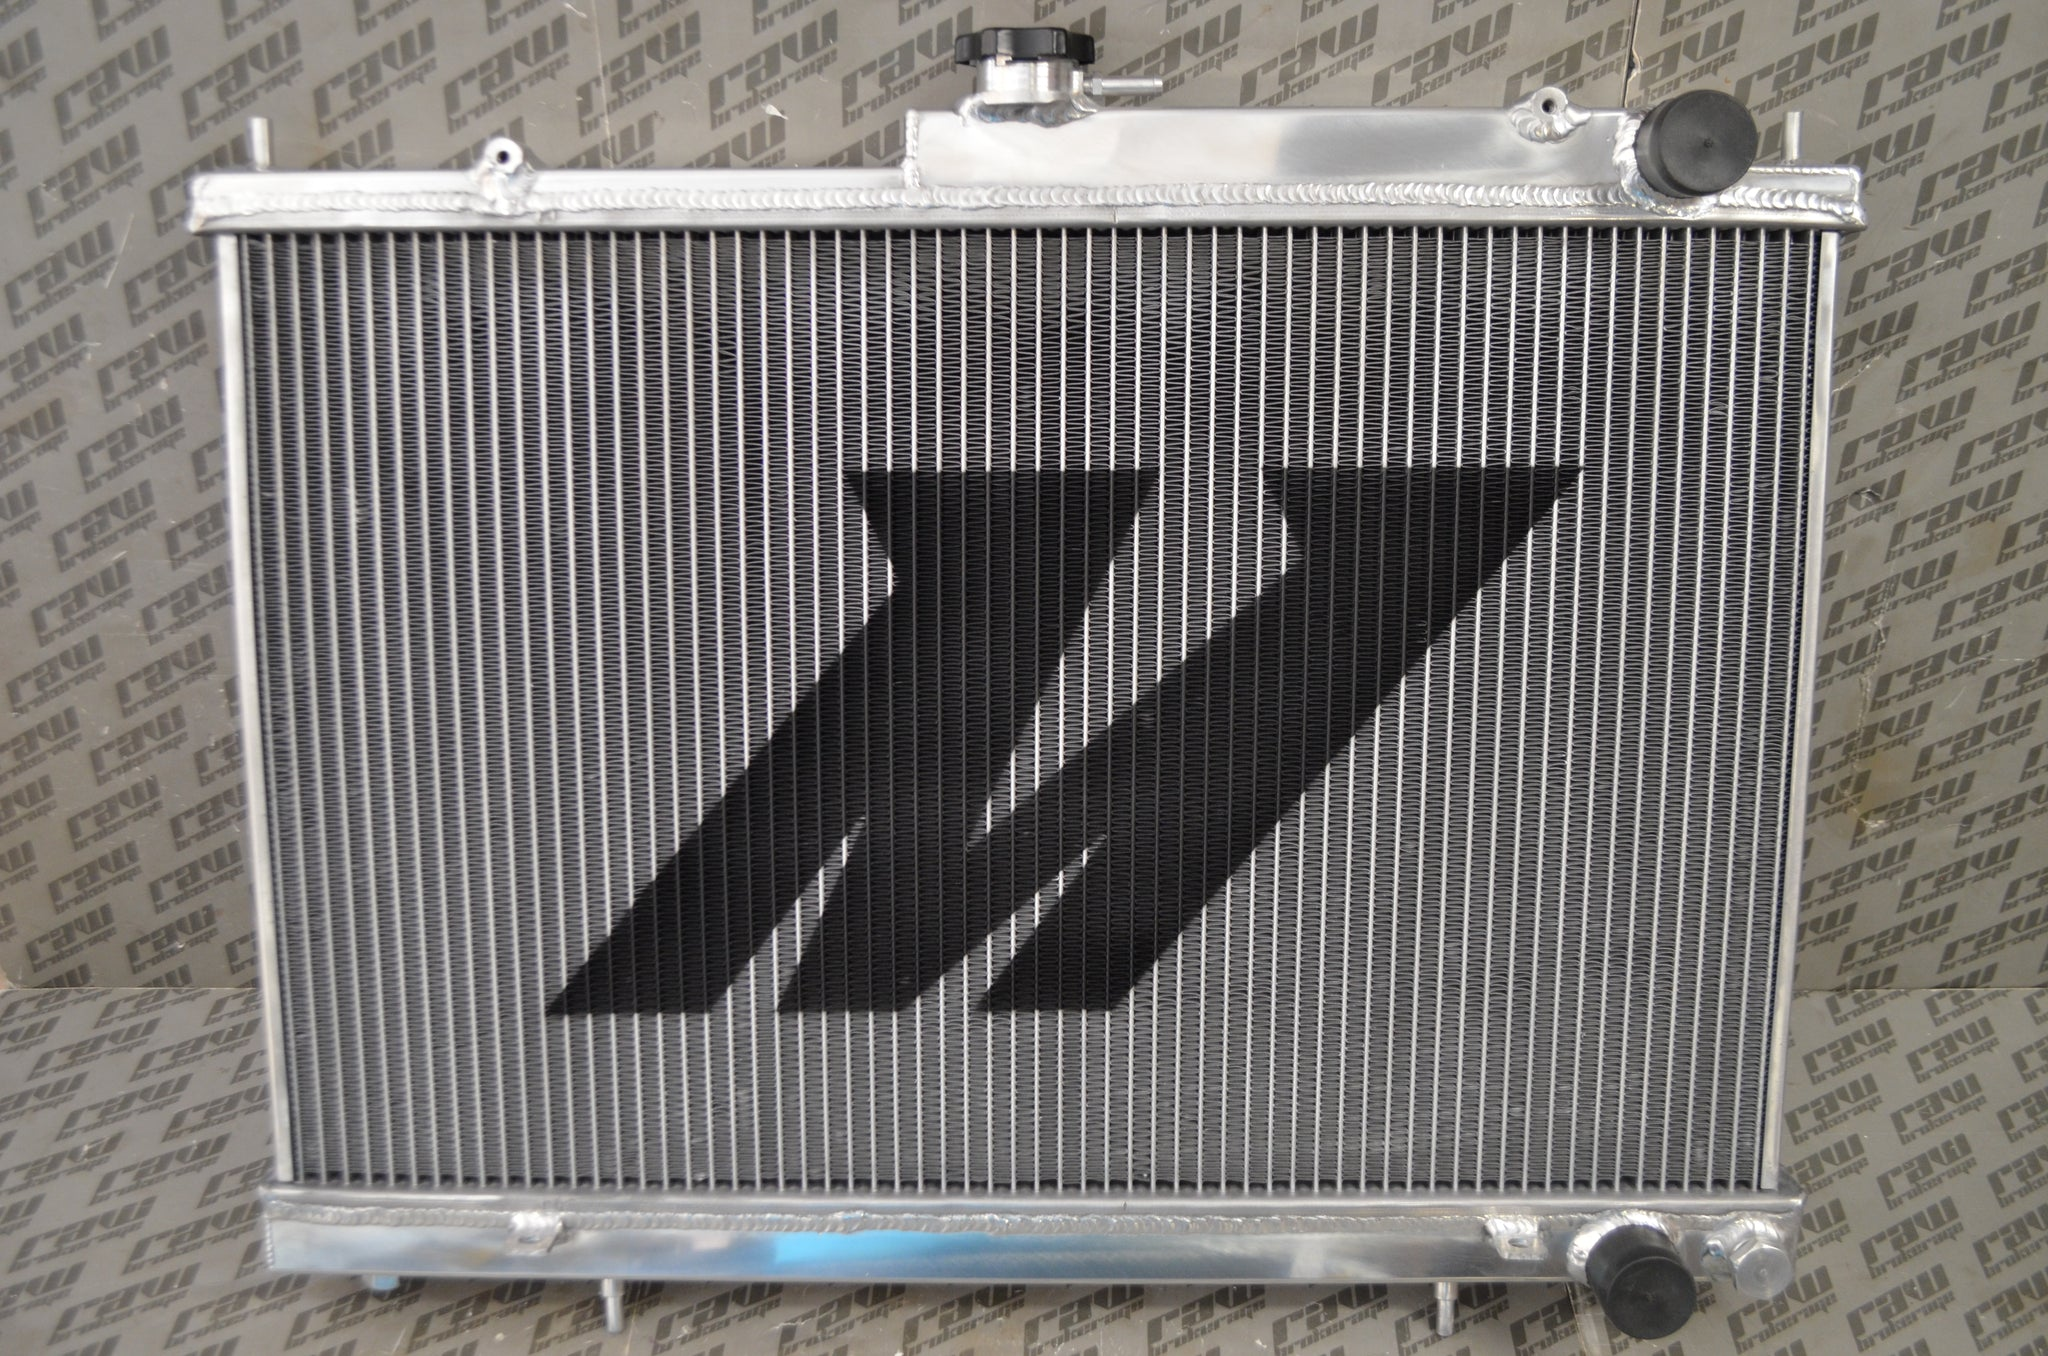 Mishimoto Nissan S13 240SX Performance Aluminum Radiator for KA & RB